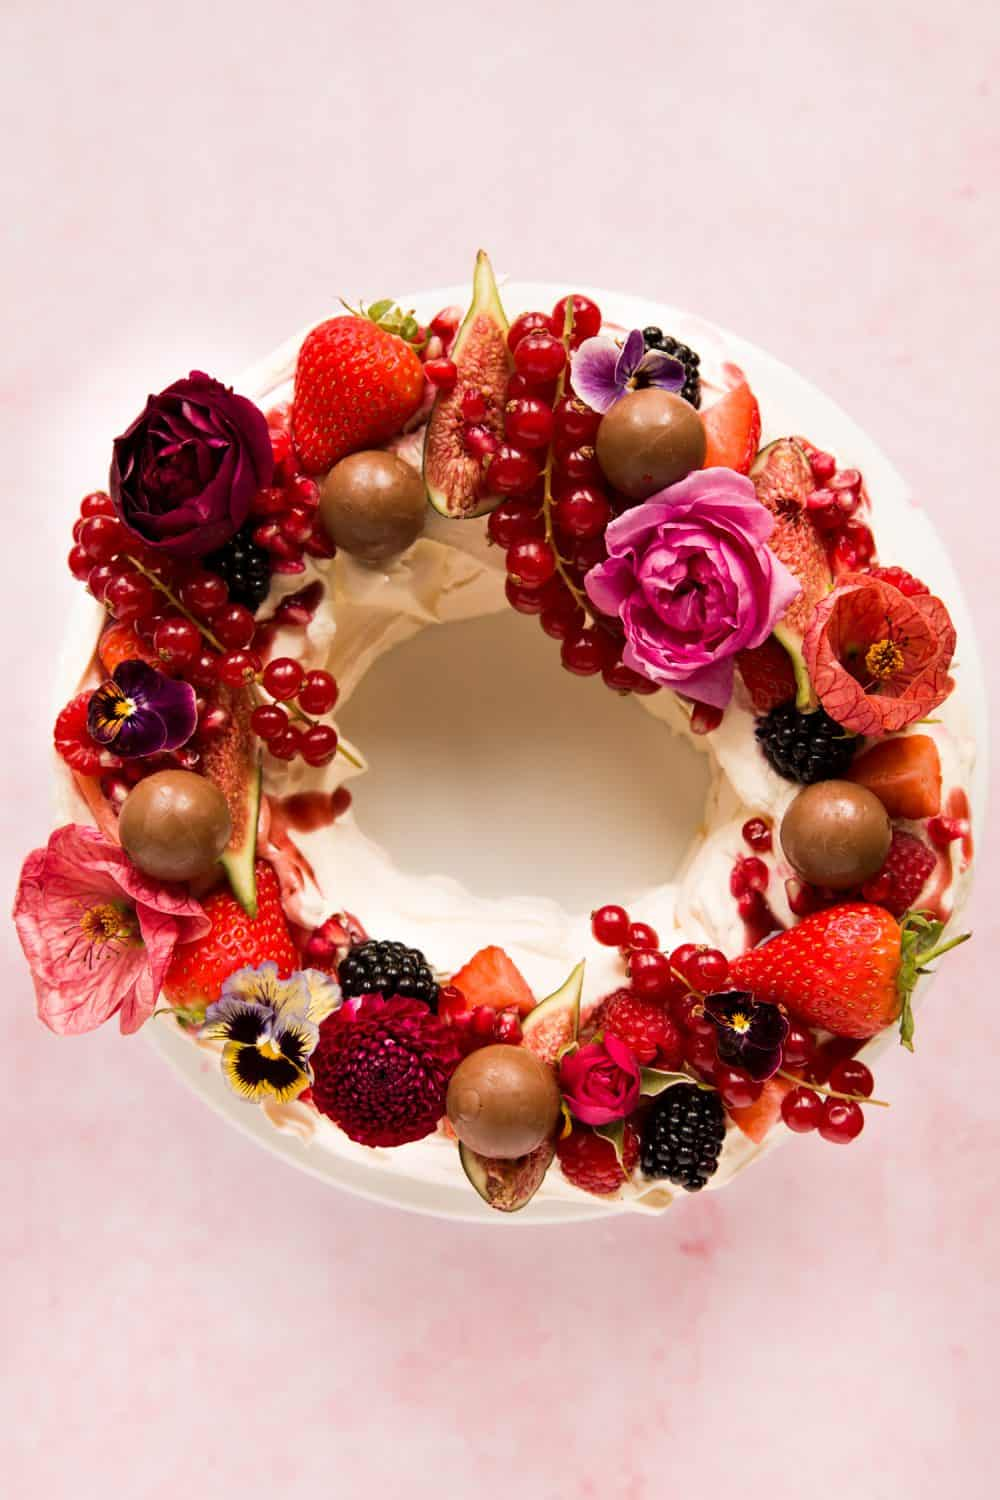 A pavlova topped with whipped cream, fresh fruit and edible flowers.